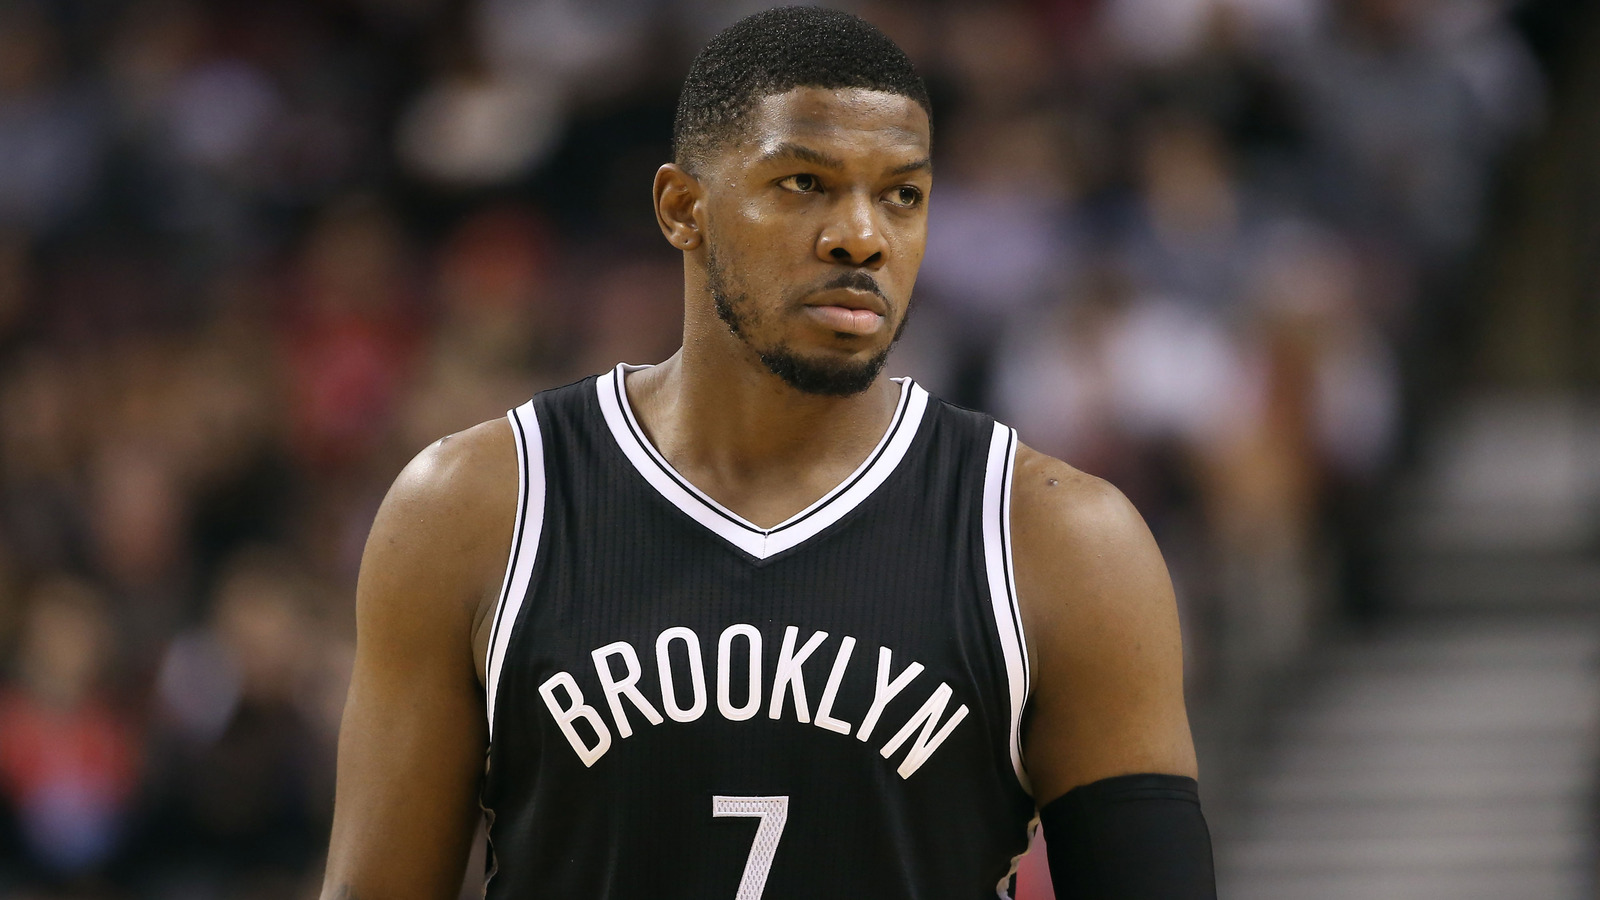 Cleveland Cavs reportedly interested in acquiring Joe Johnson or Ben McLemore